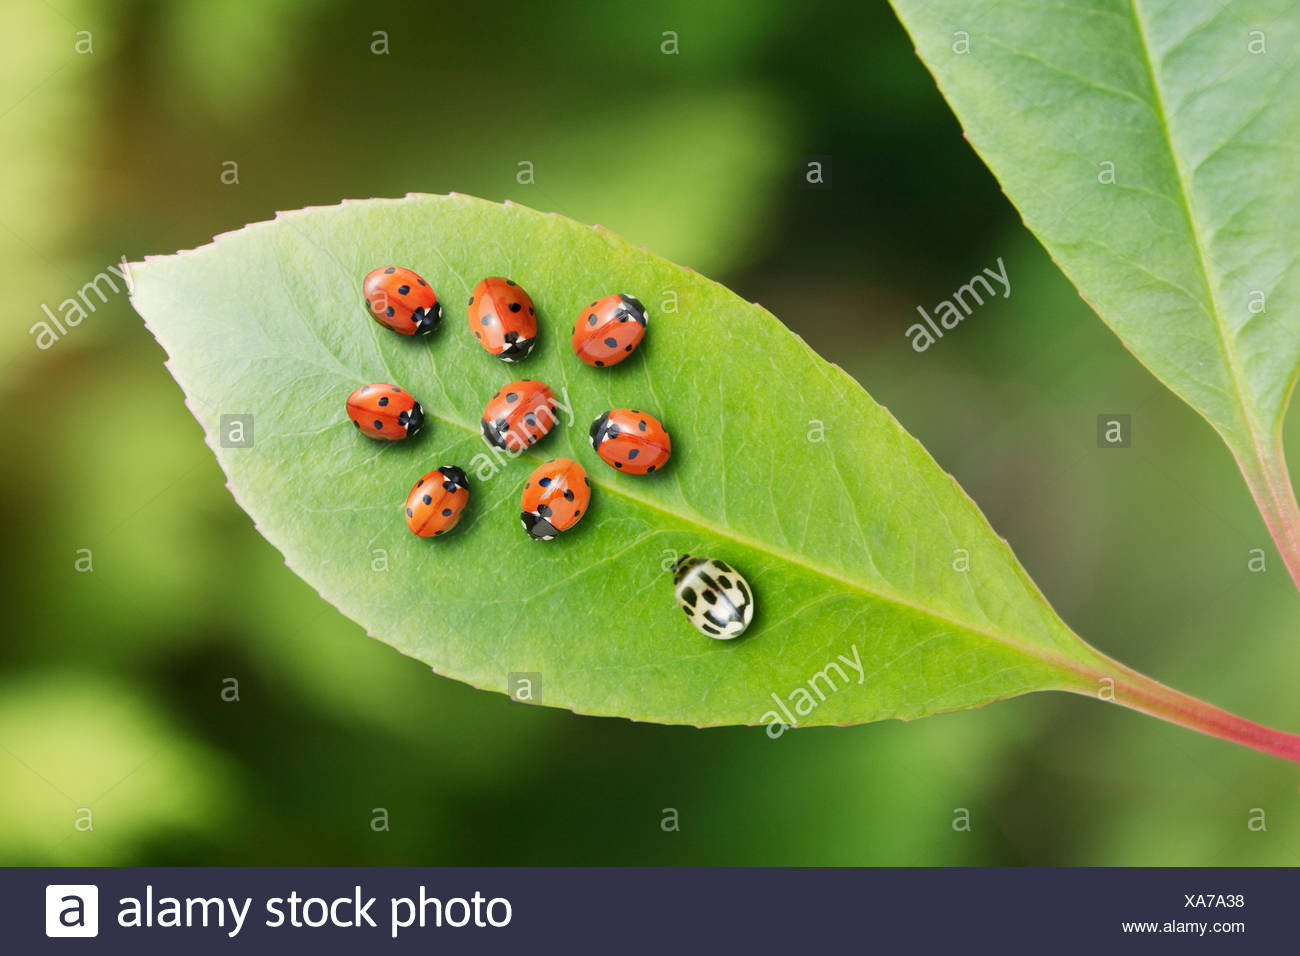 Unique ladybug standing out from the crowd on leaf - Stock Image